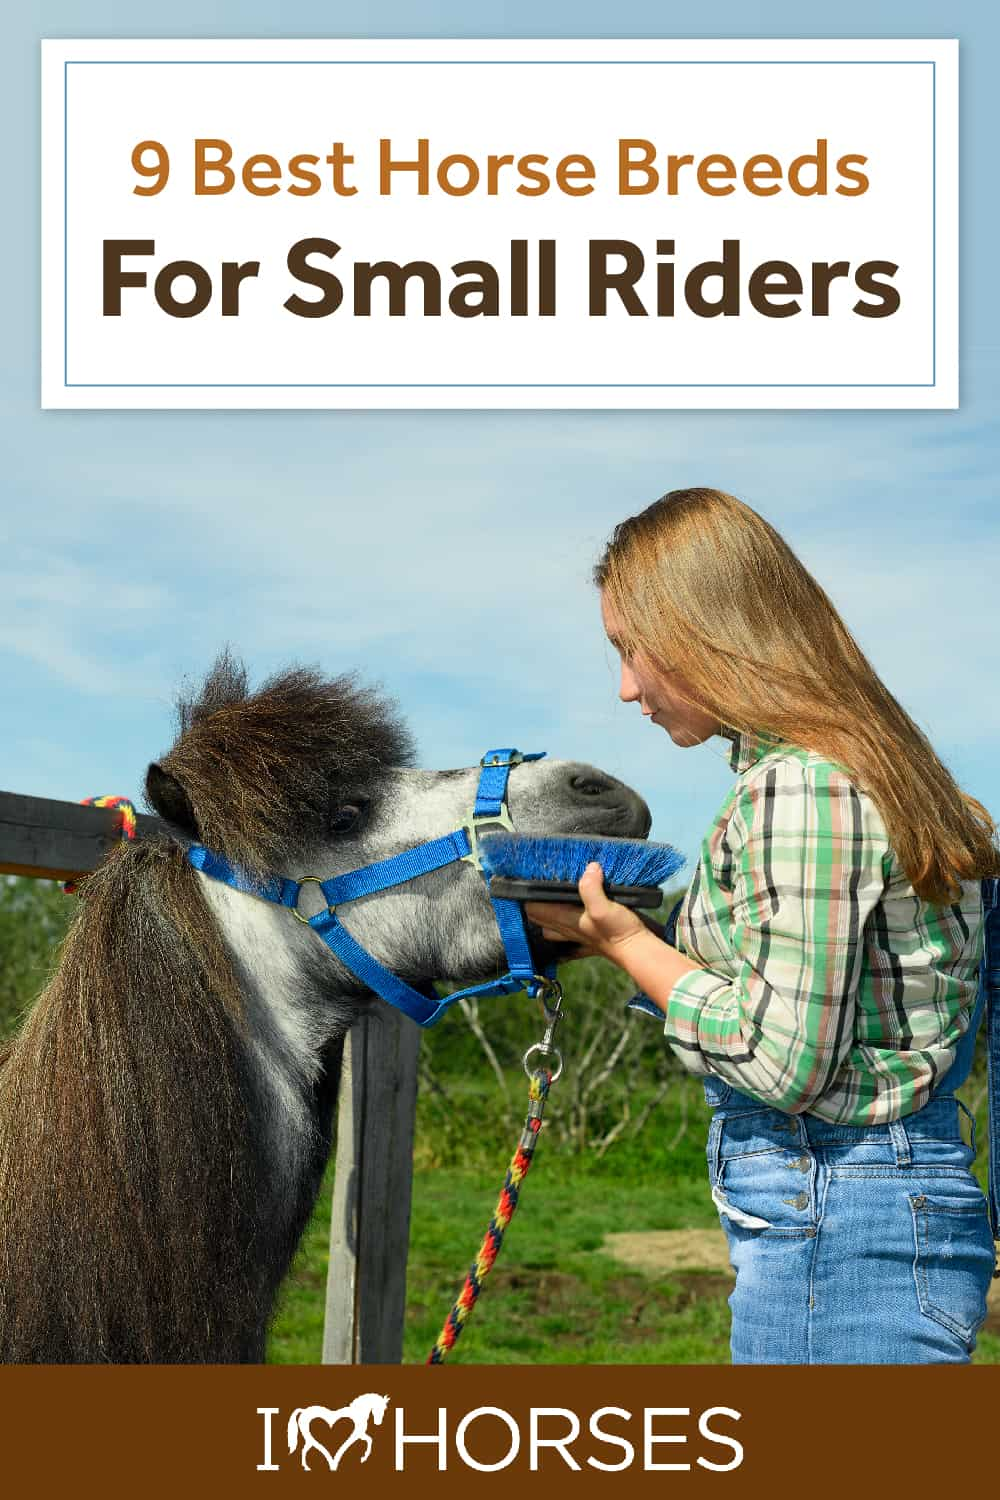 9 Best Horse Breeds For Small Riders